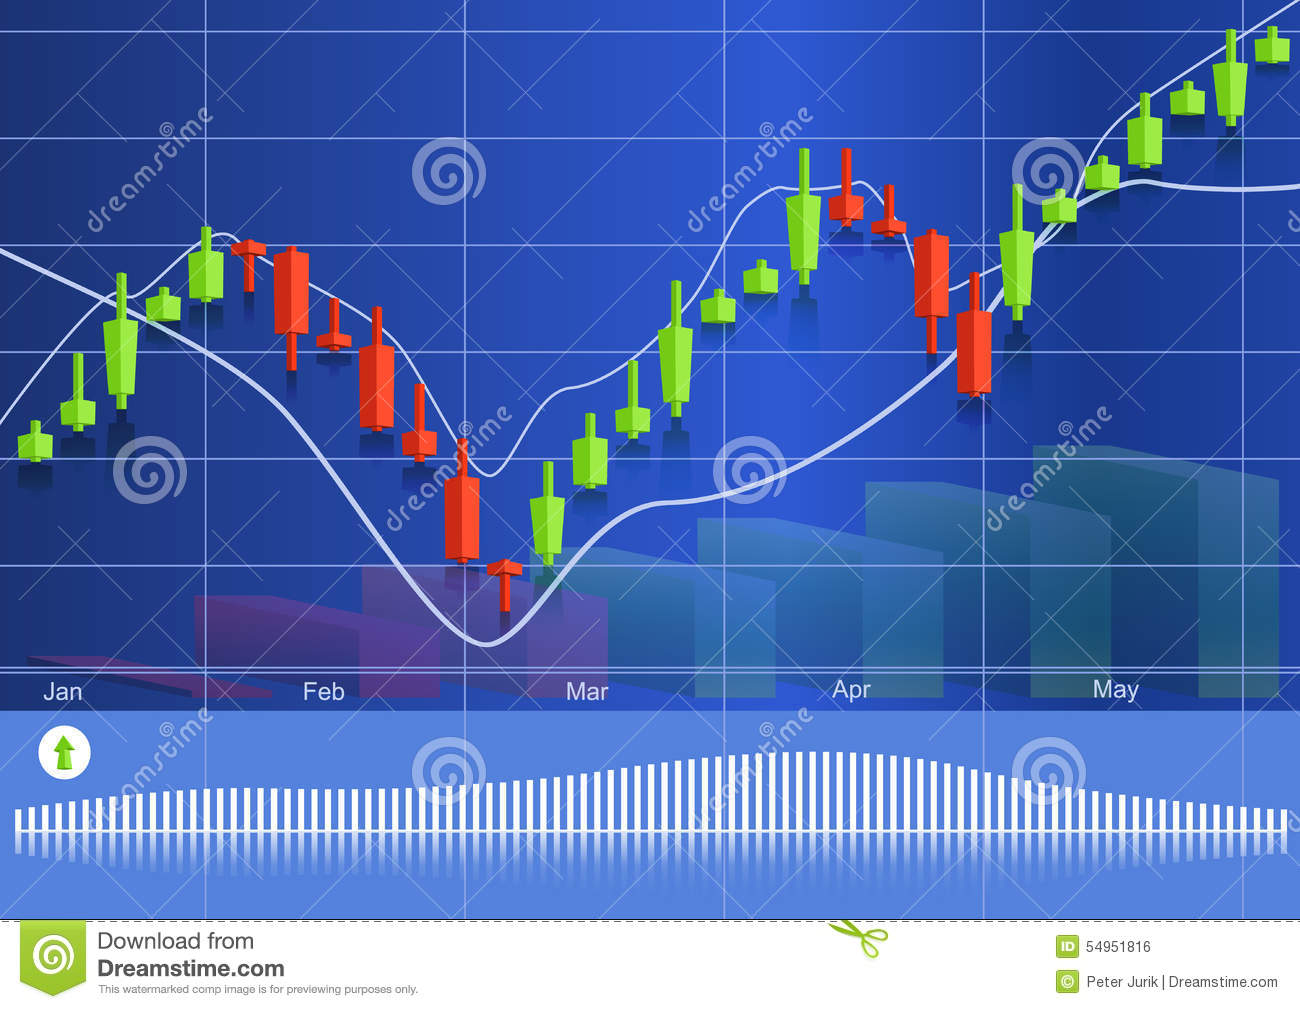 Commodities trading: An overview